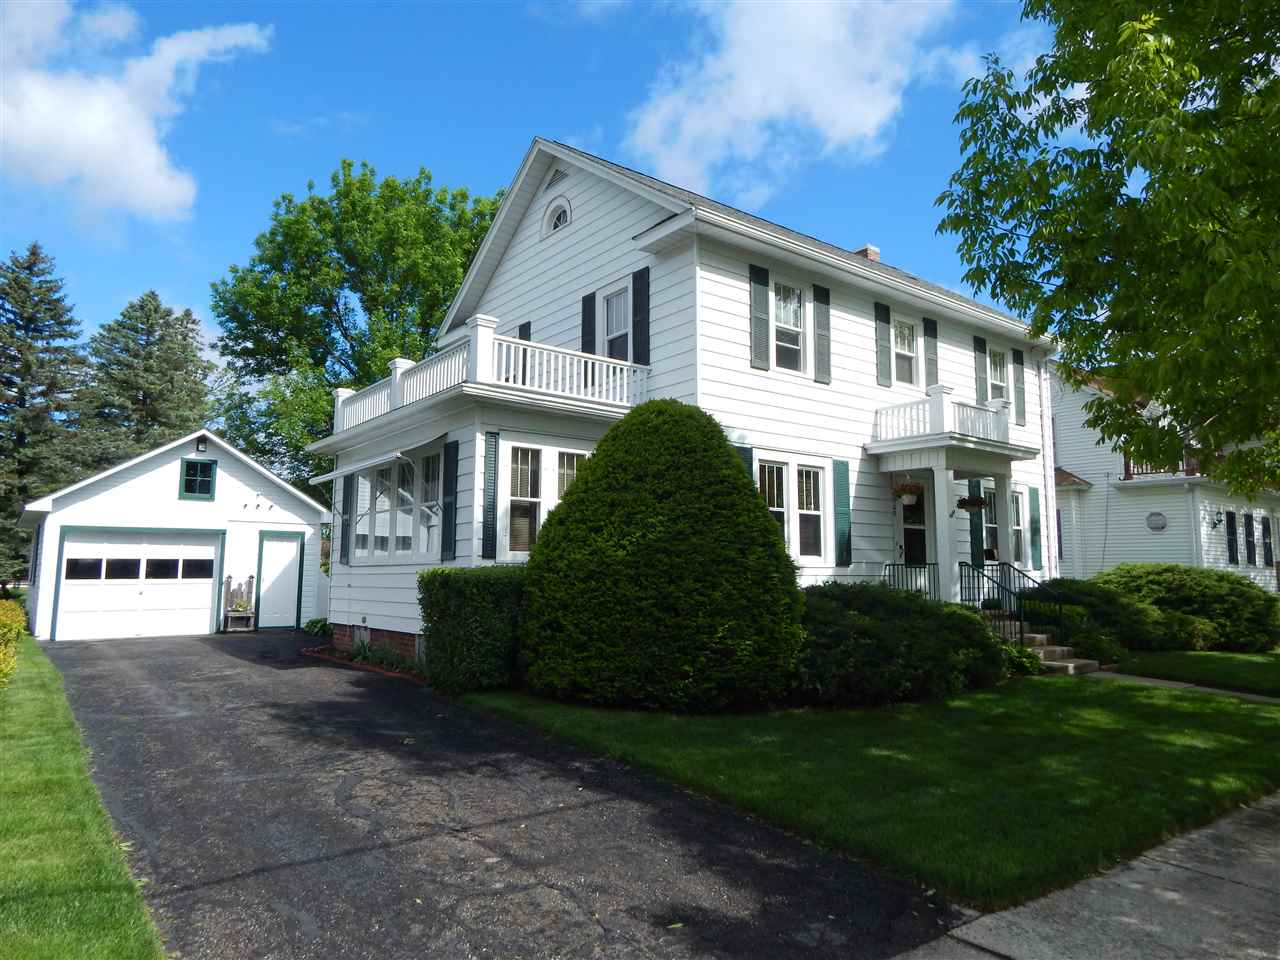 302 Lincoln Ave, Reeseville, WI 53579